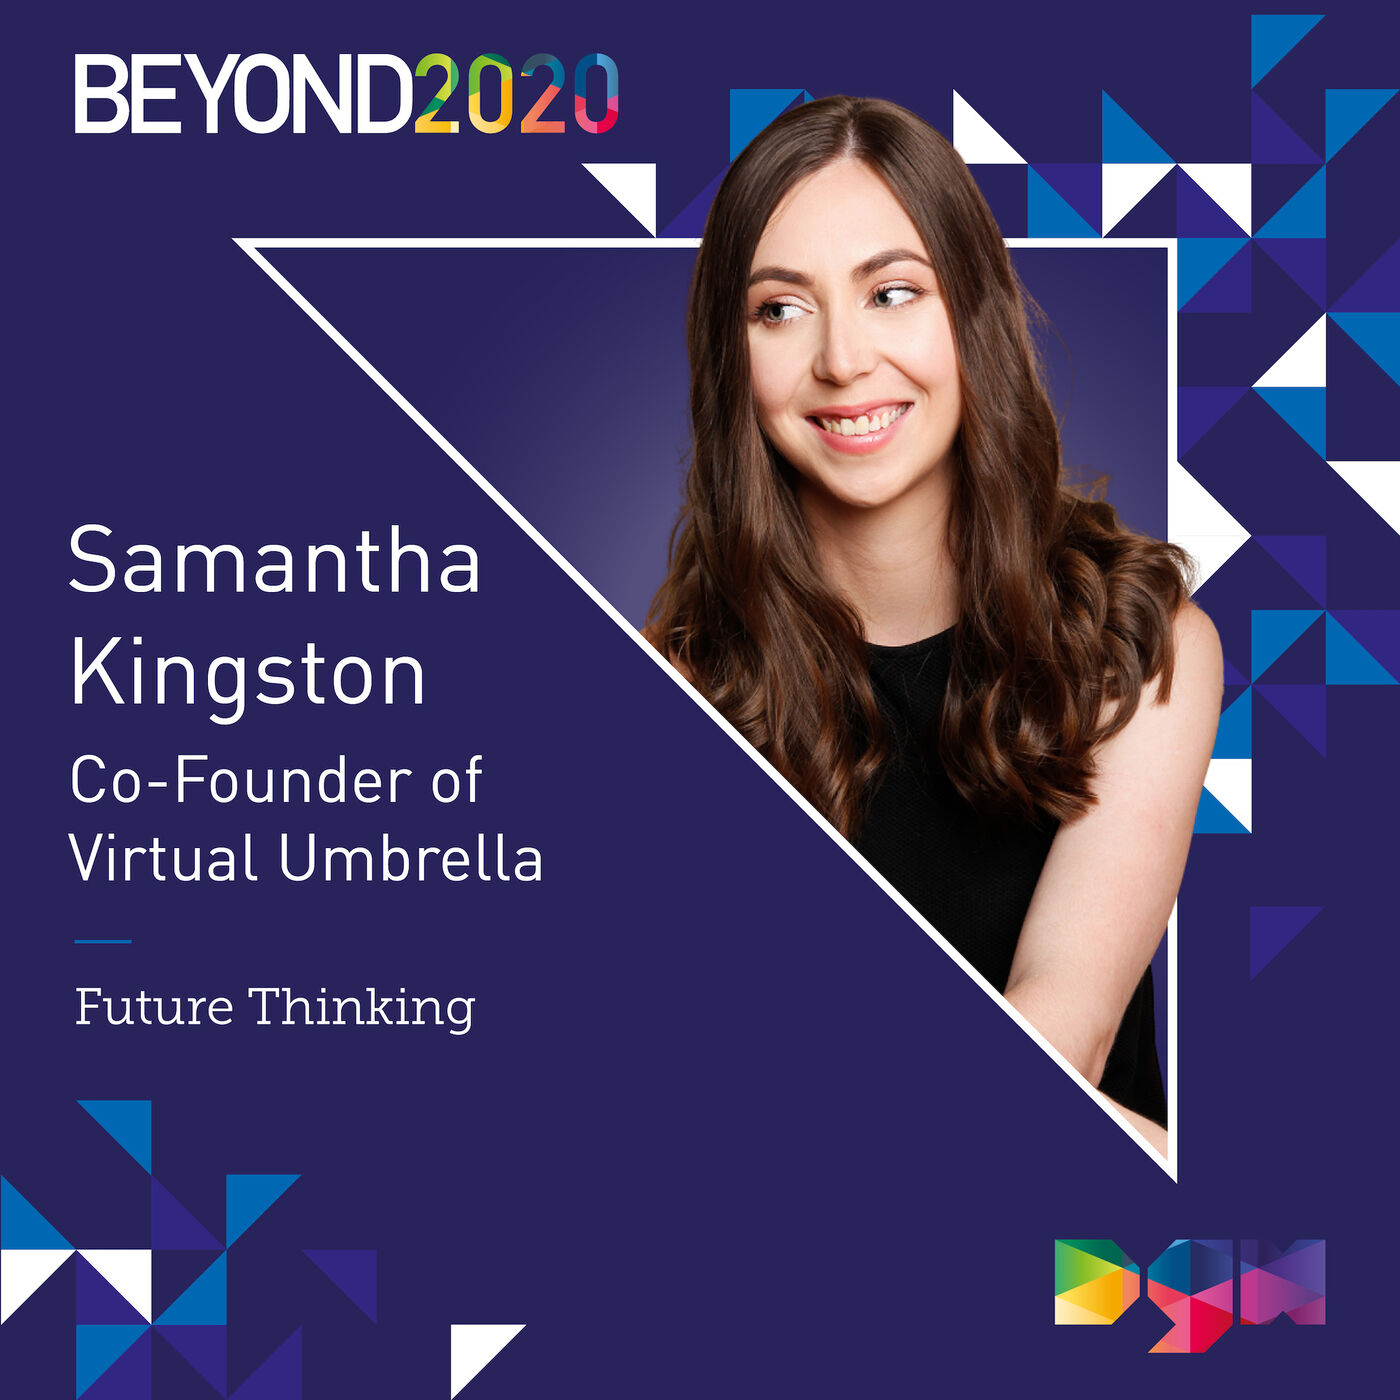 """""""Implementing VR in your marketing strategy"""" with Virtual Umbrella CEO, Samantha Kingston - BEYOND2020 - #S1E14"""